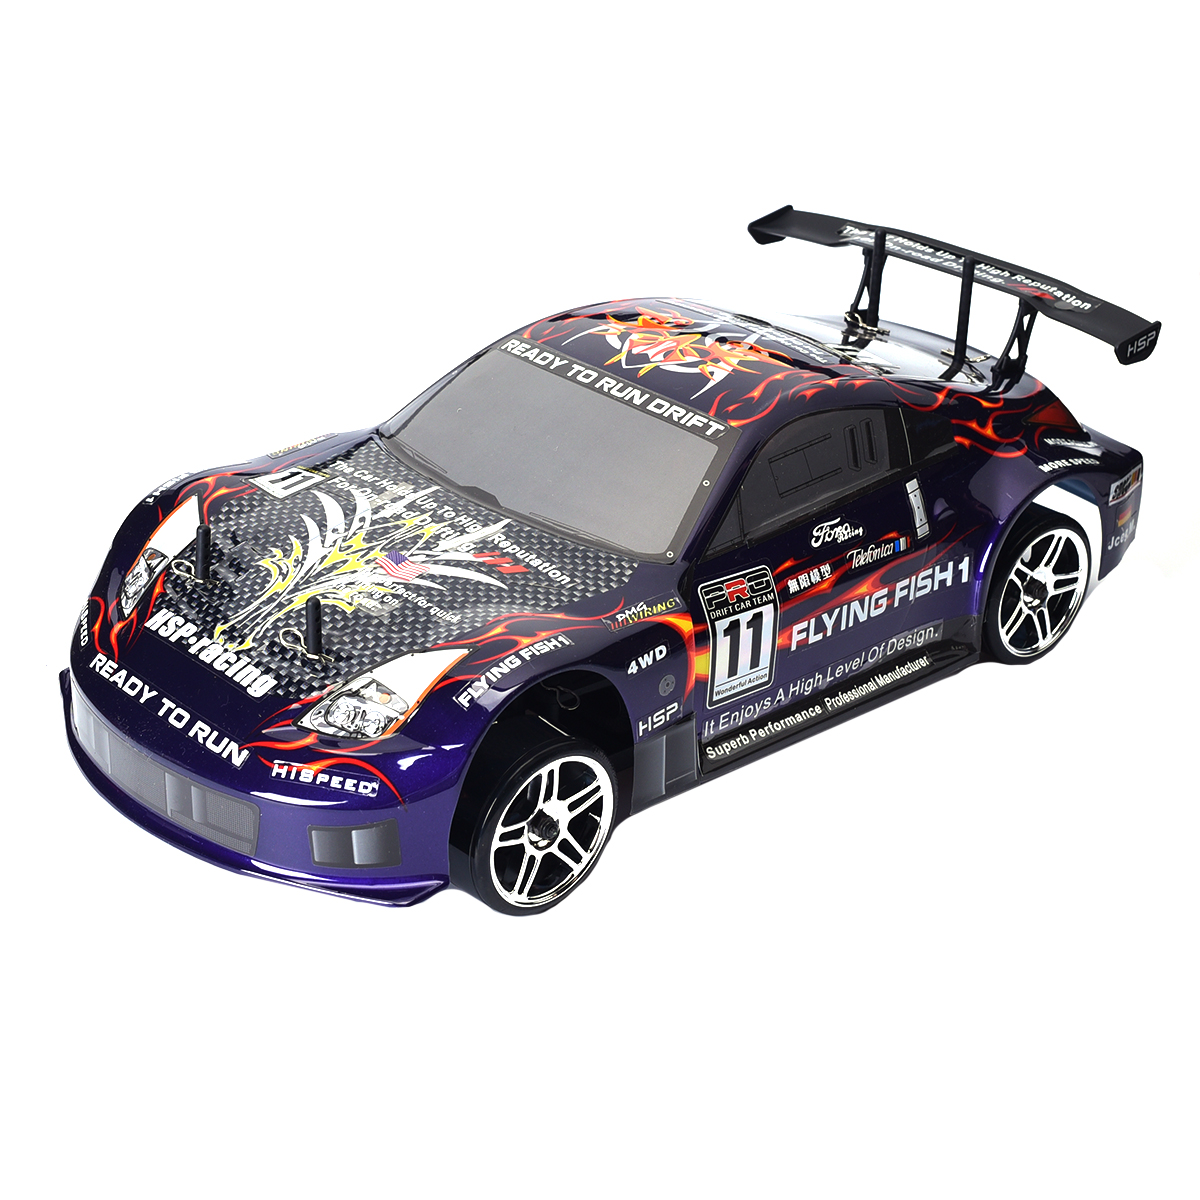 HSP High Speed 94123 1:10 Rc Drift Car 4wd Electric Flying